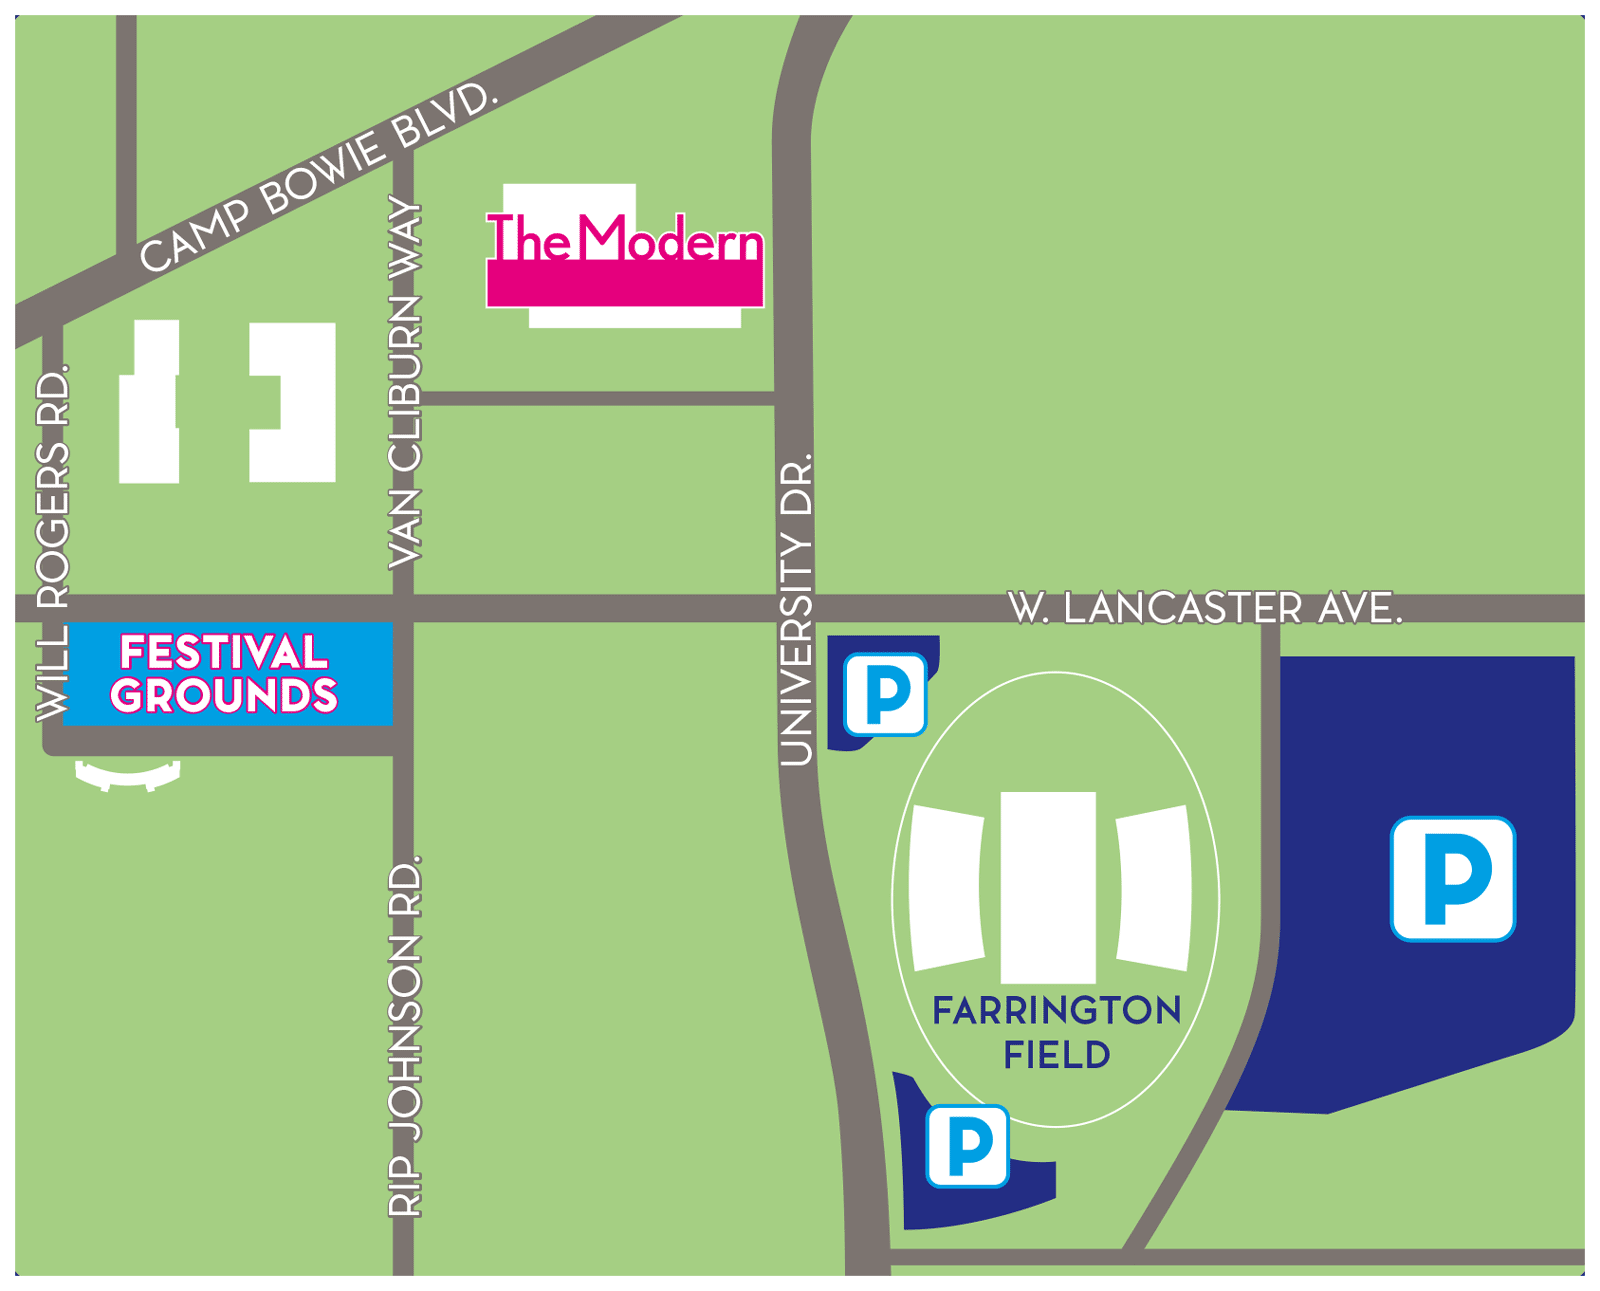 Overview map of festival location